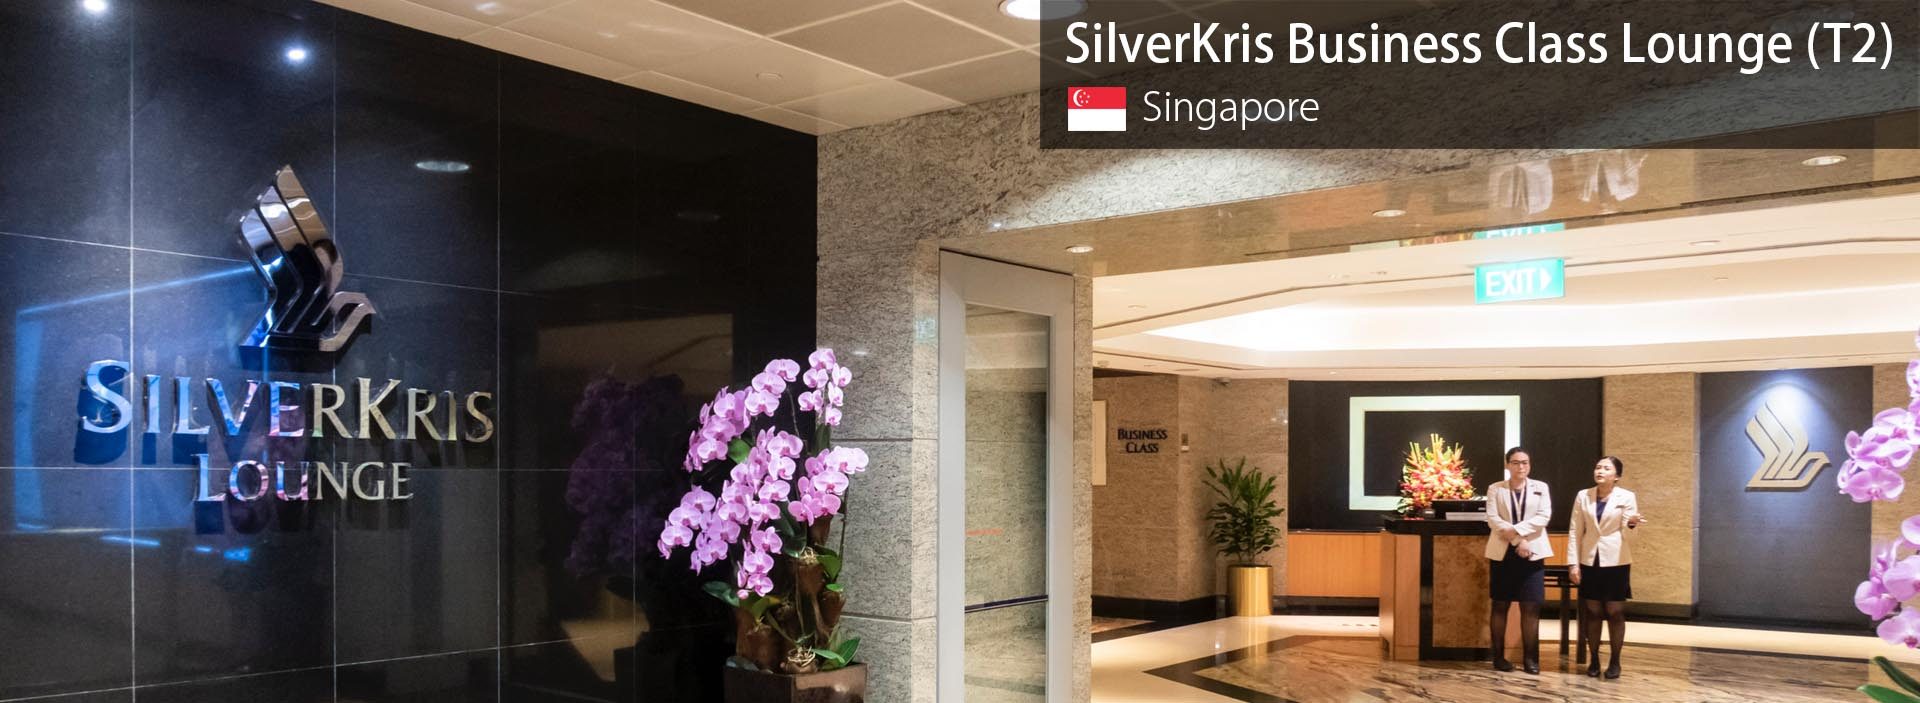 Singapore Airlines SilverKris Business Lounge at Changi Airport [Review]